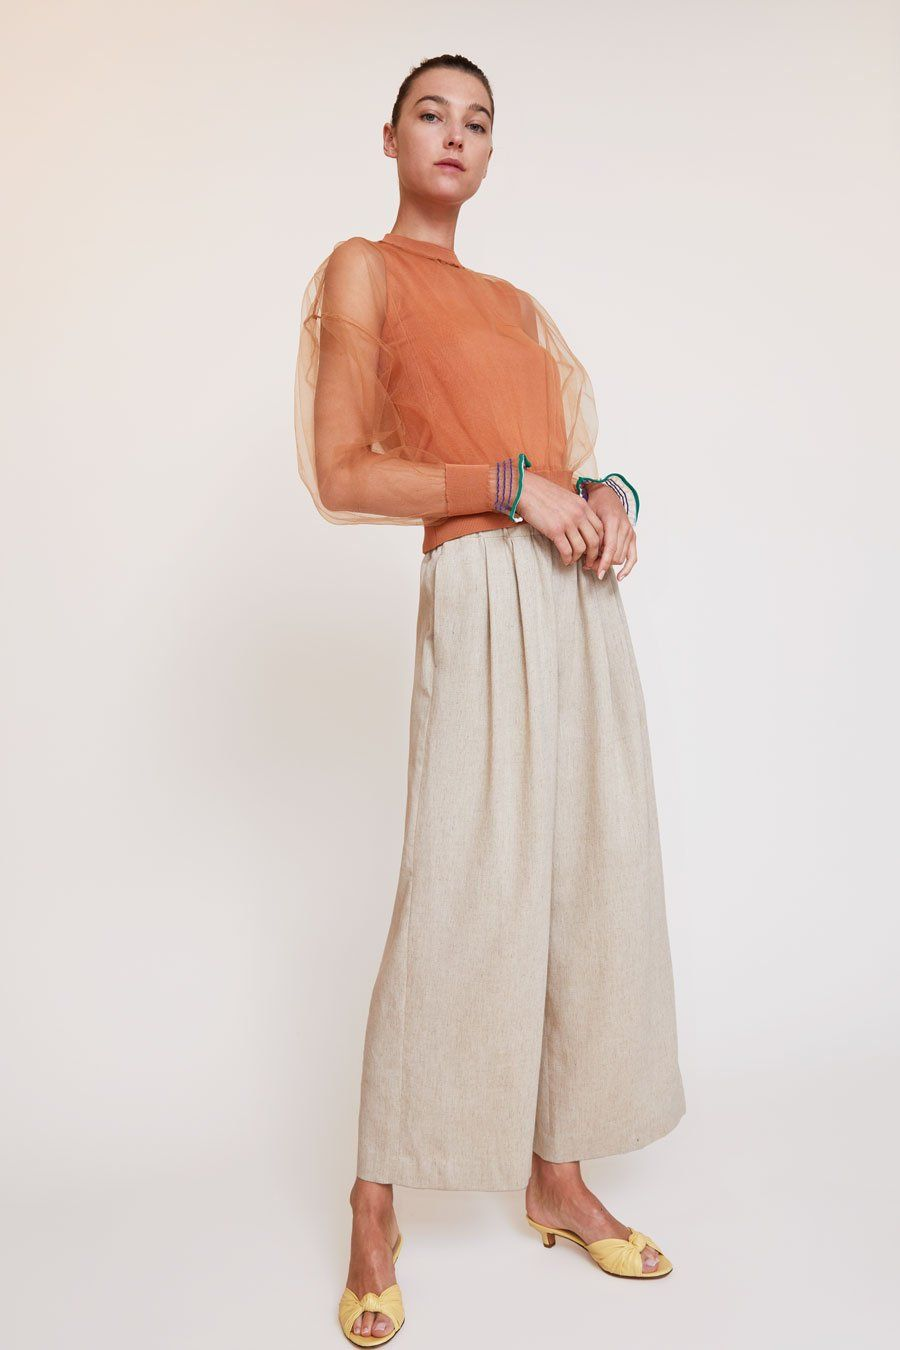 Enfold sheer layered pullover in medium beige layered